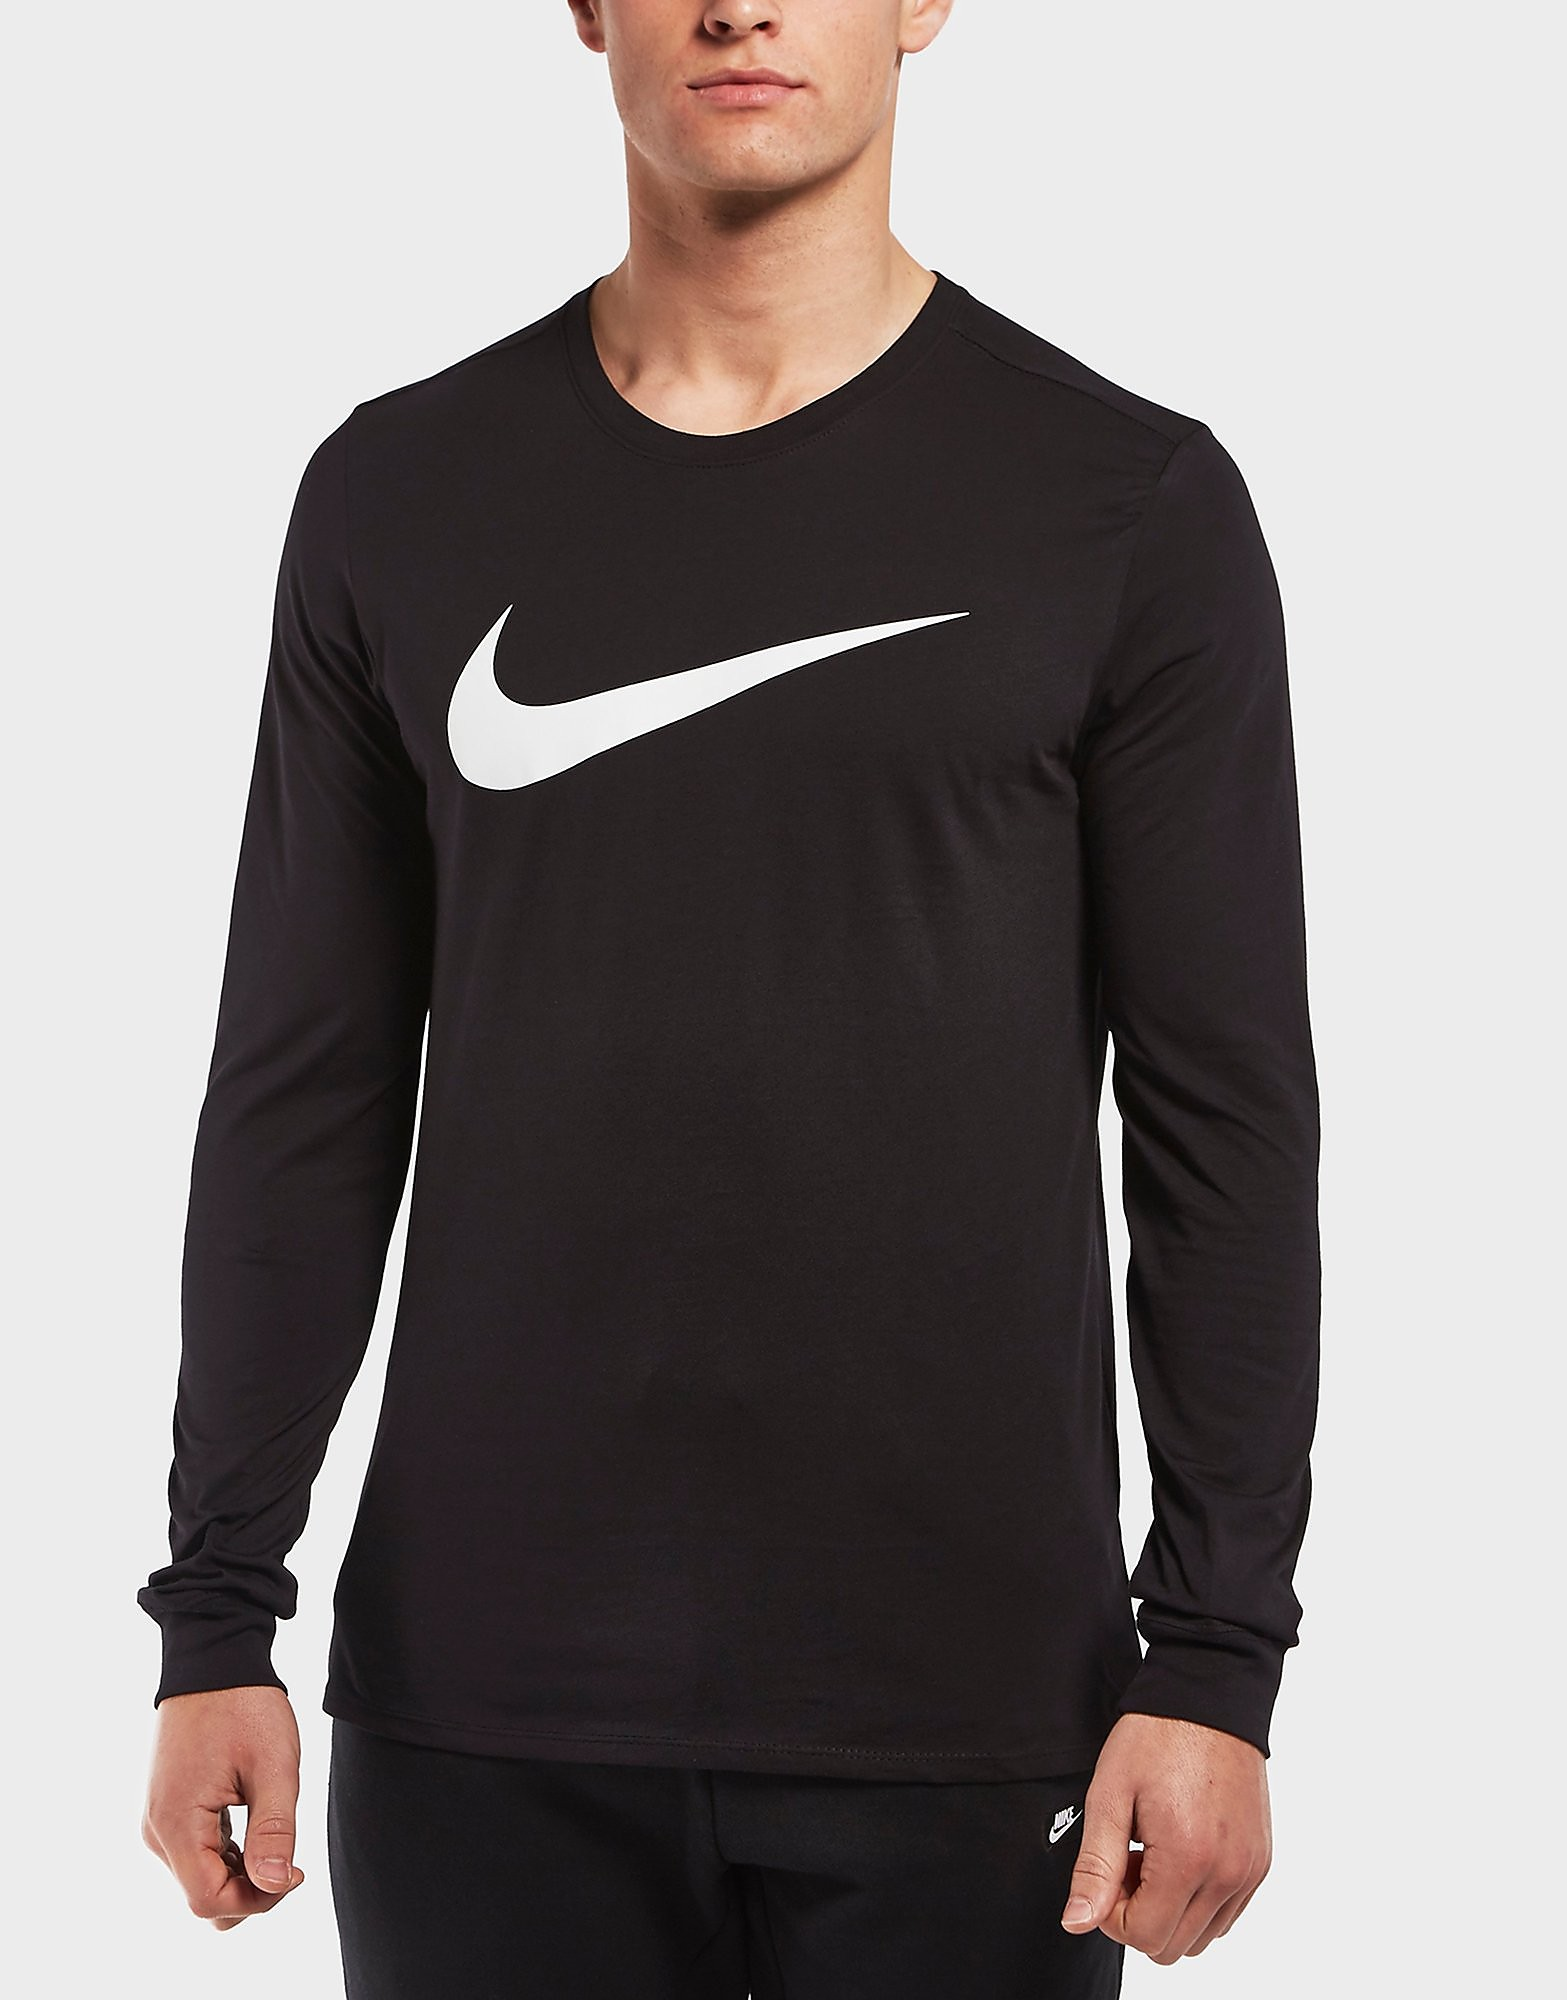 Nike Long Sleeve Swoosh T-Shirt